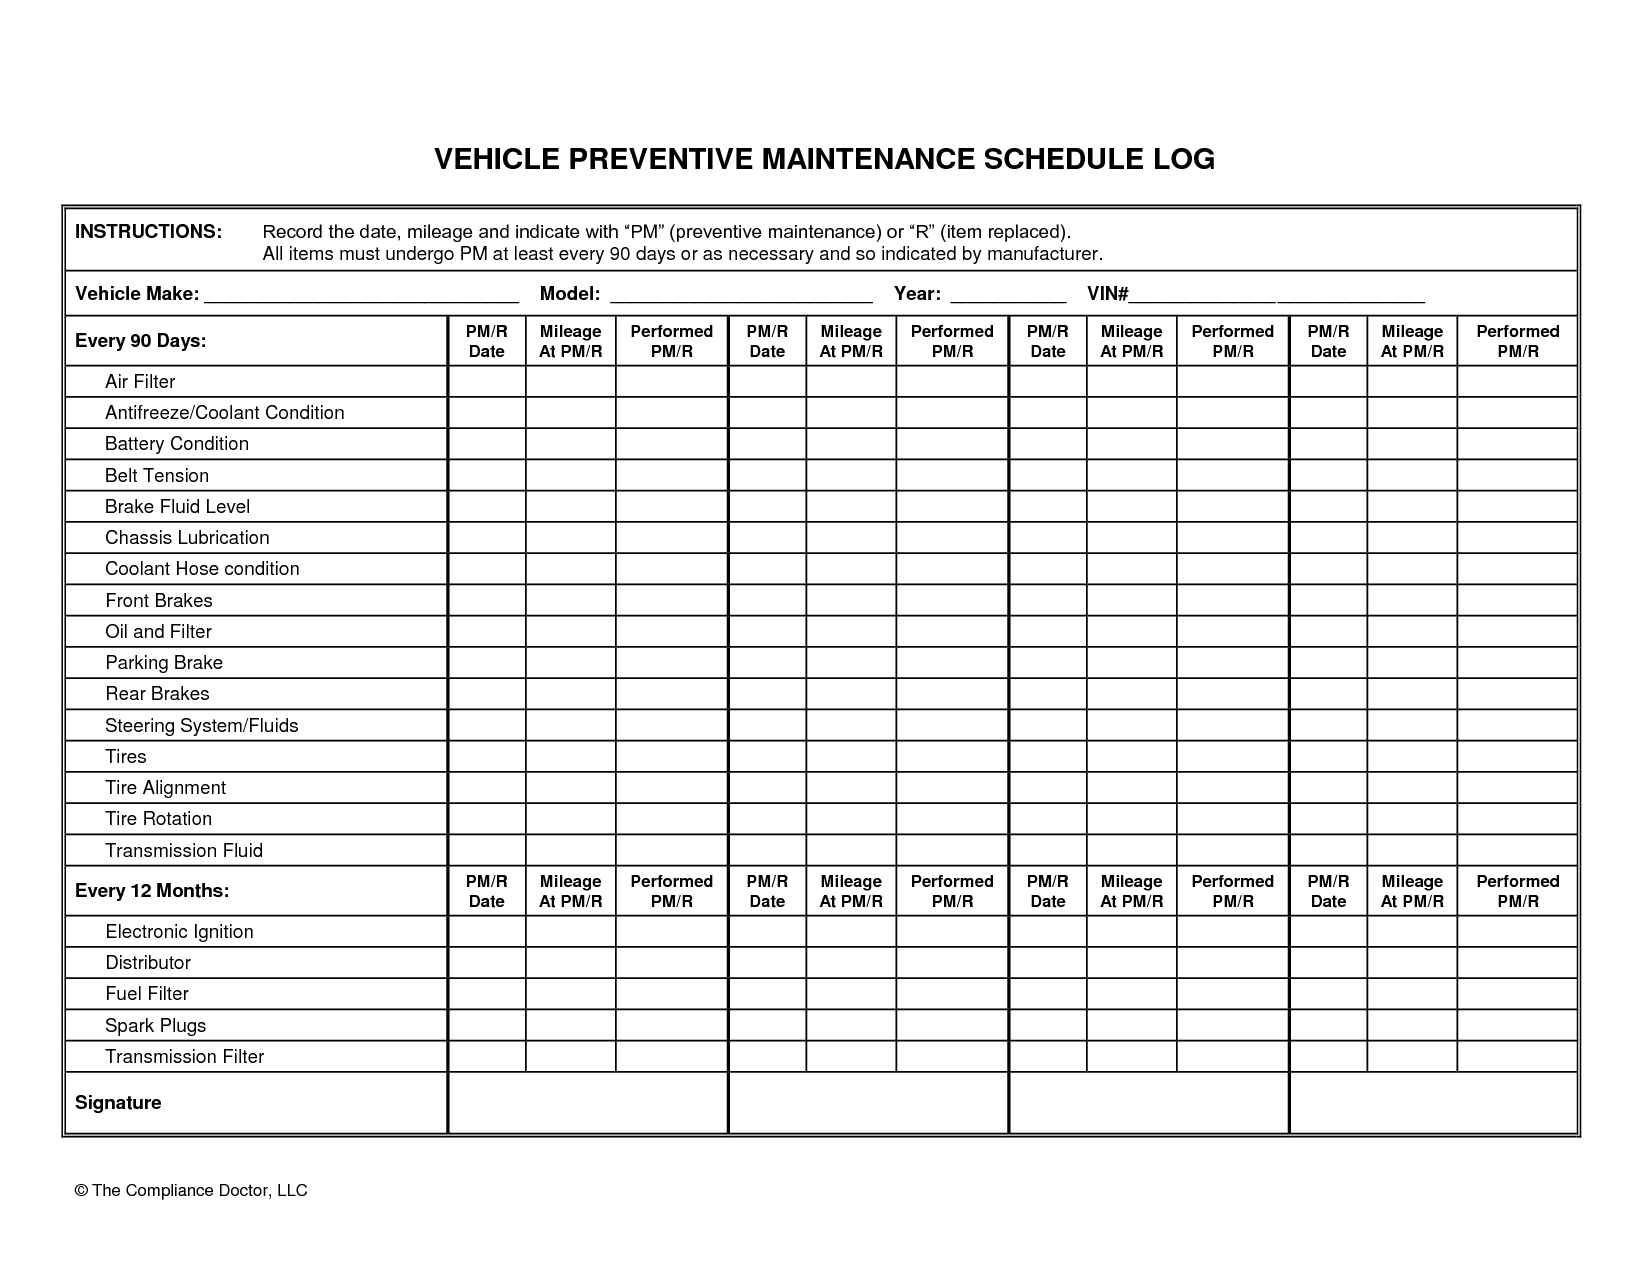 002 Archaicawful Car Maintenance Schedule Template Inspiration  Vehicle Preventive Excel LogFull